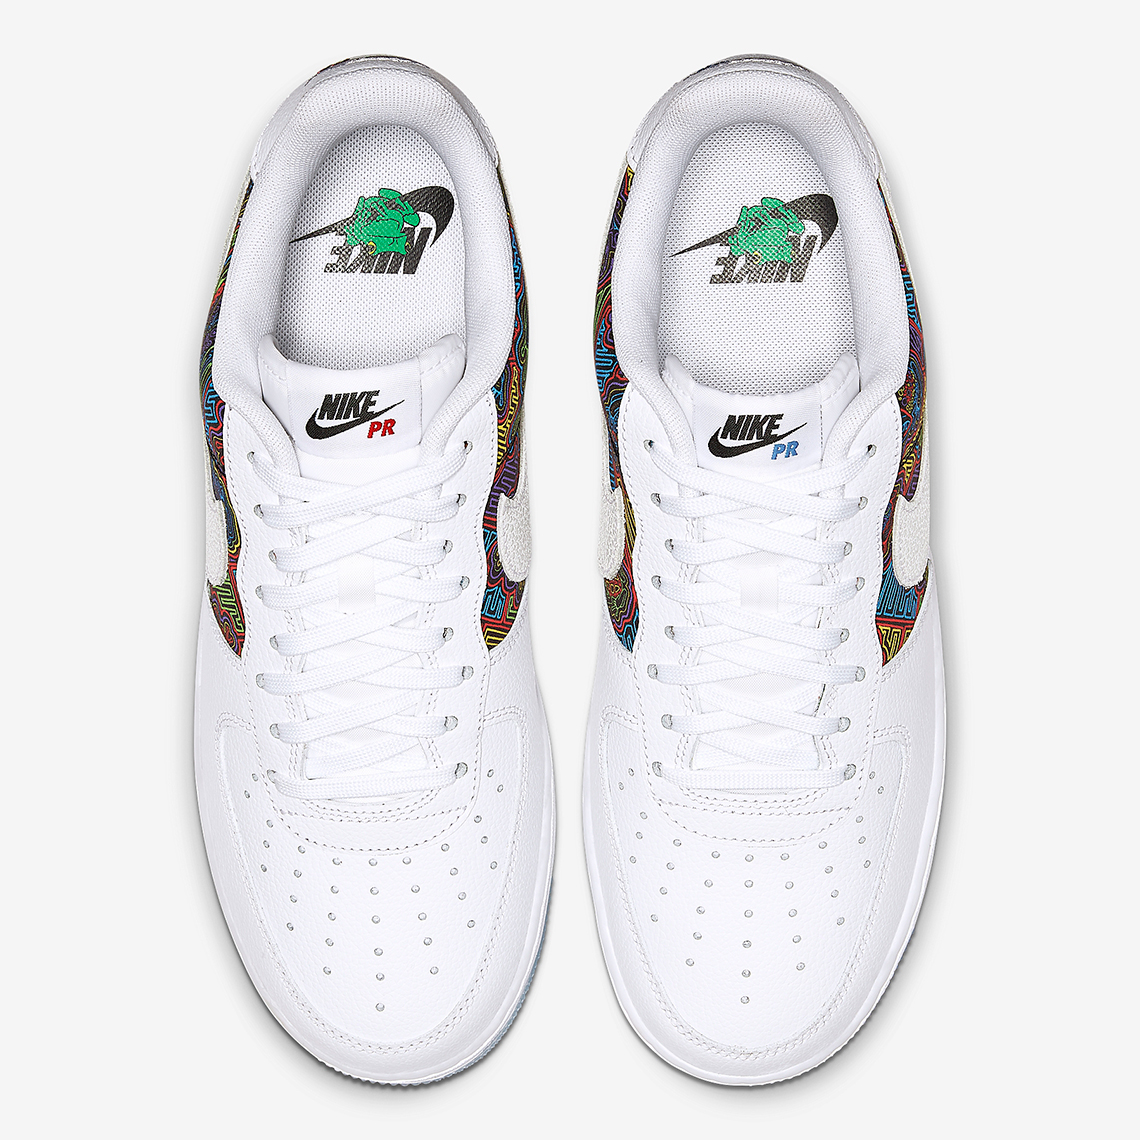 sneakers for cheap b221f 43188 Nike Air Force 1 Low Puerto Rico CJ1620-100 Release Info ...